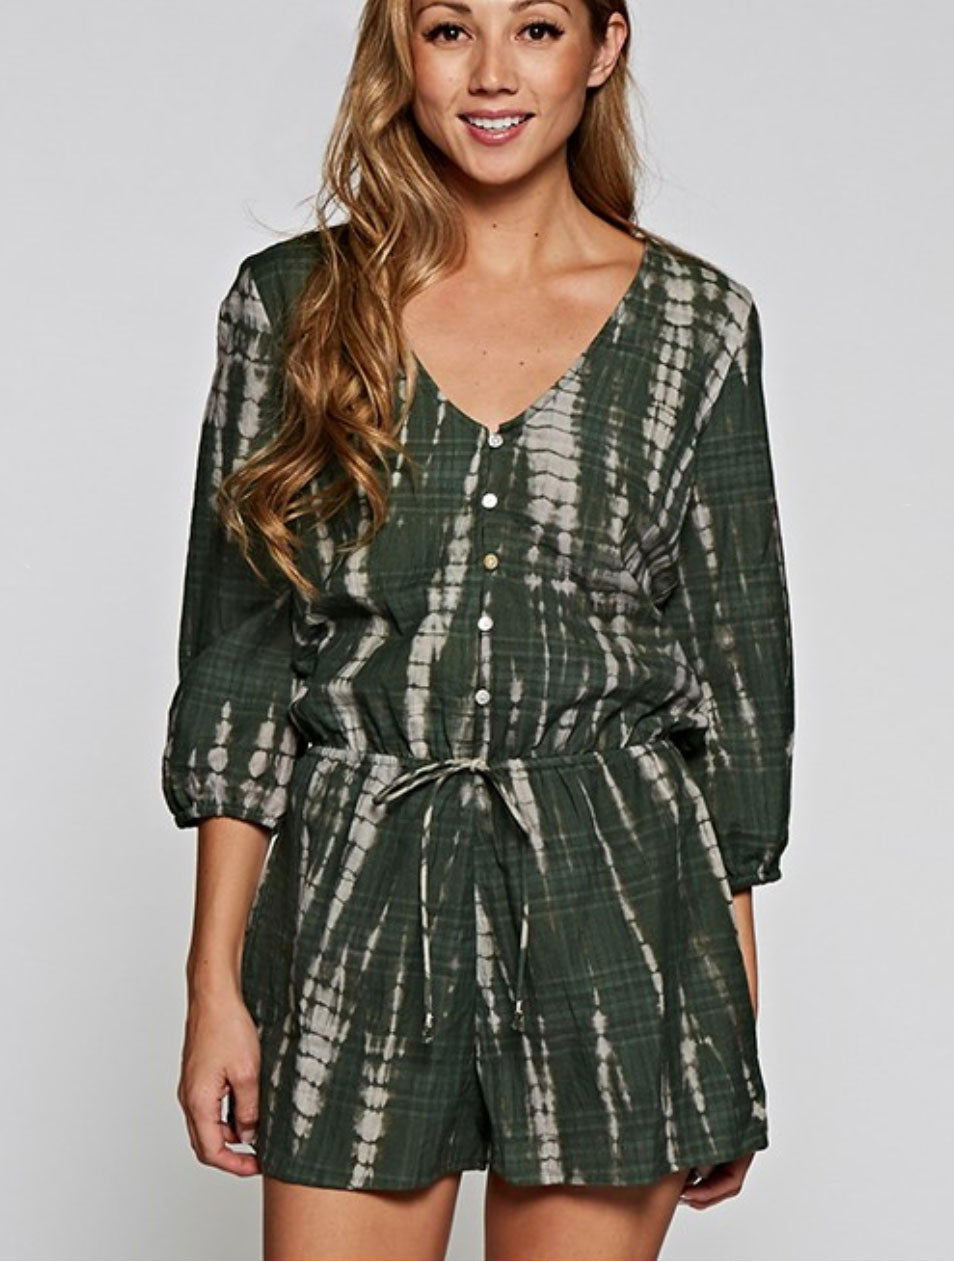 Love Stitch Tie Dye Romper in Army Green